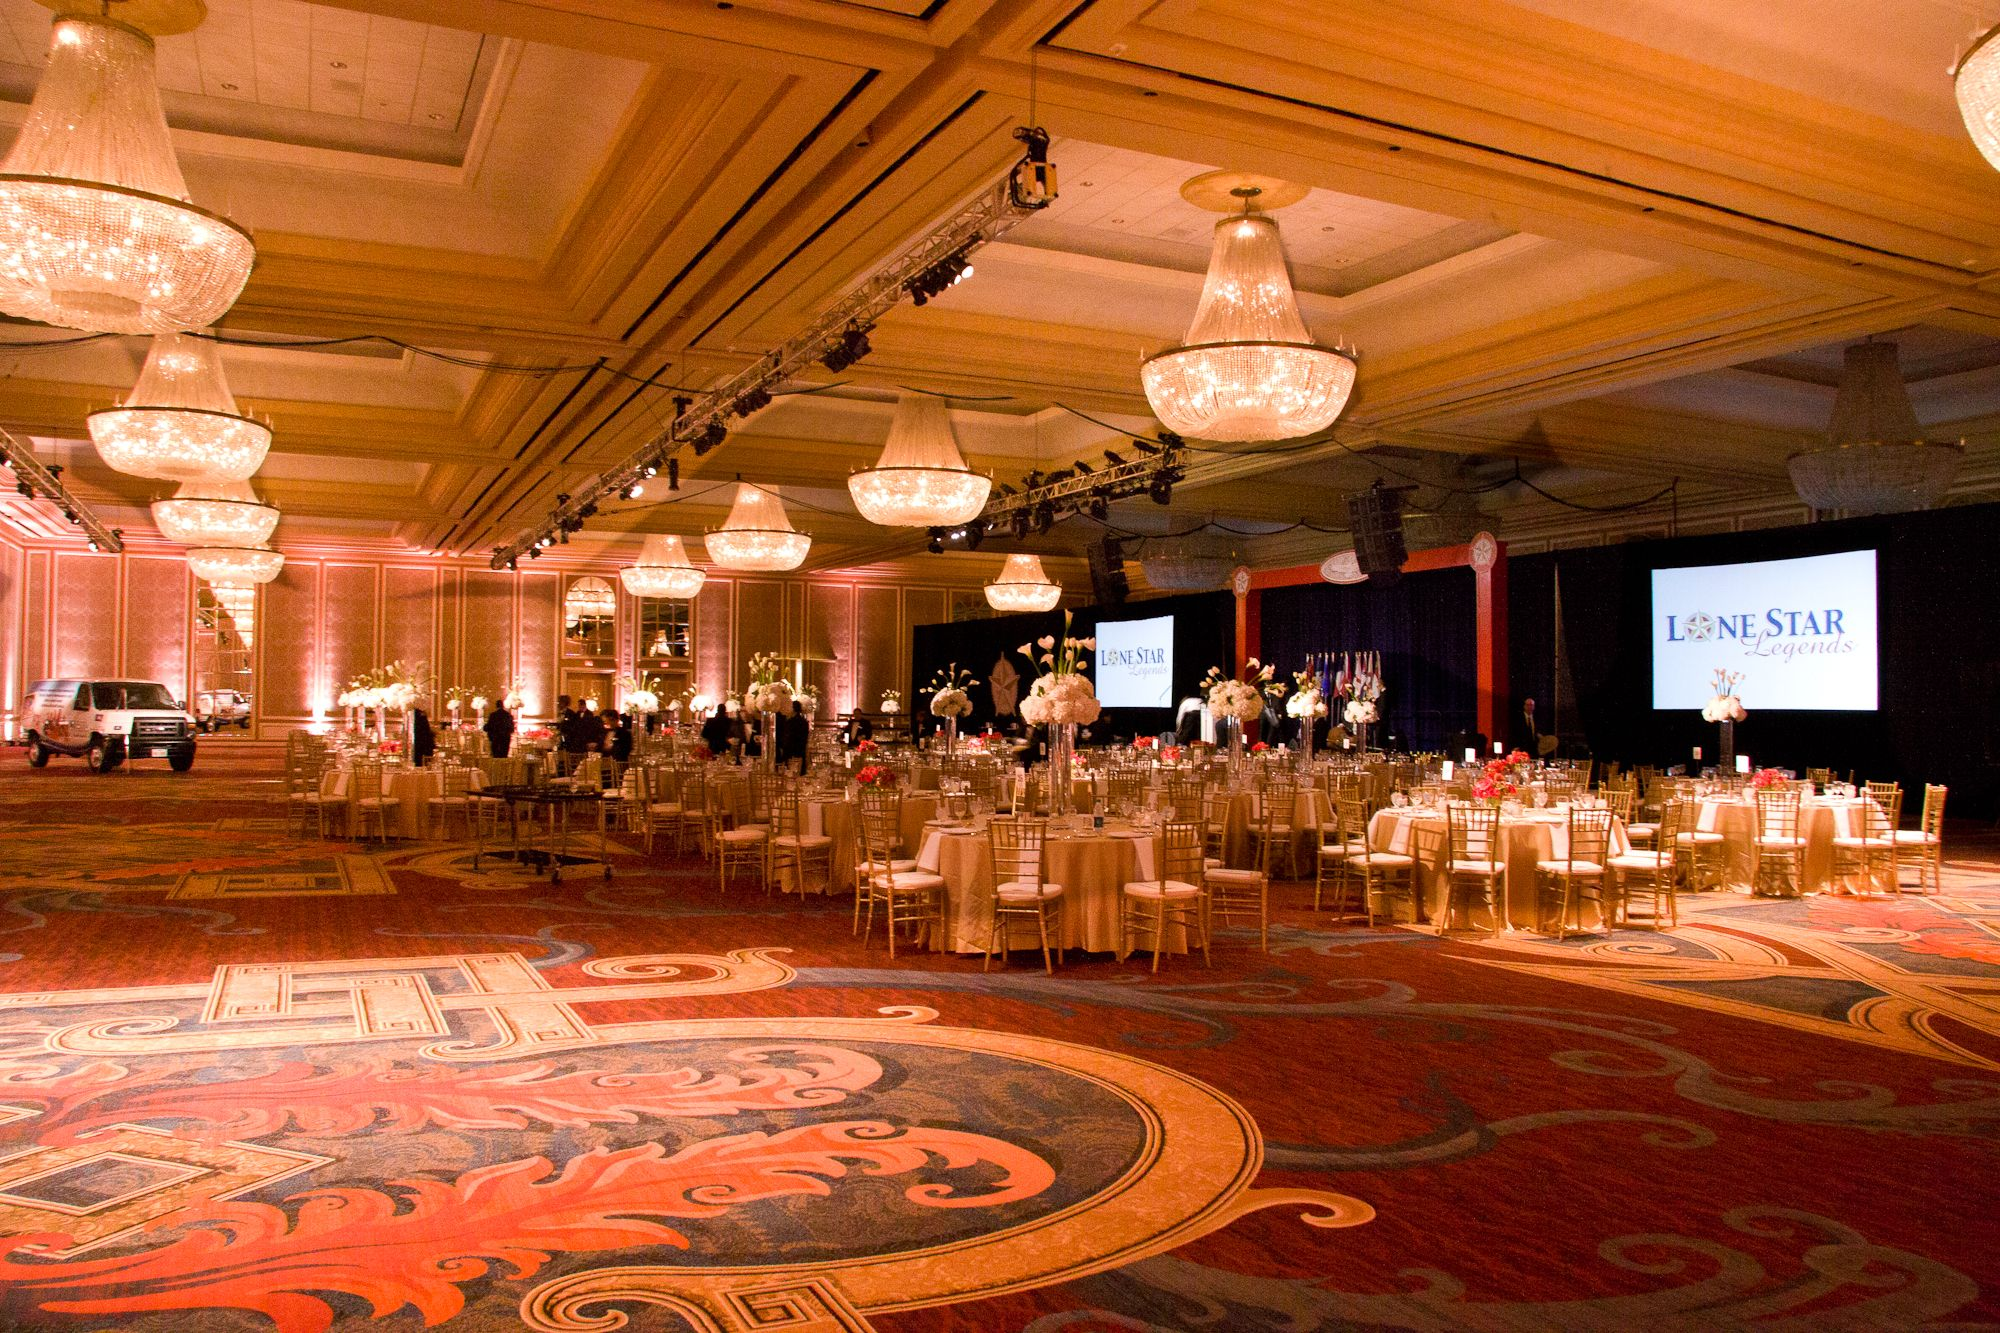 Audio visual by BEYOND for this great event in Dallas. www